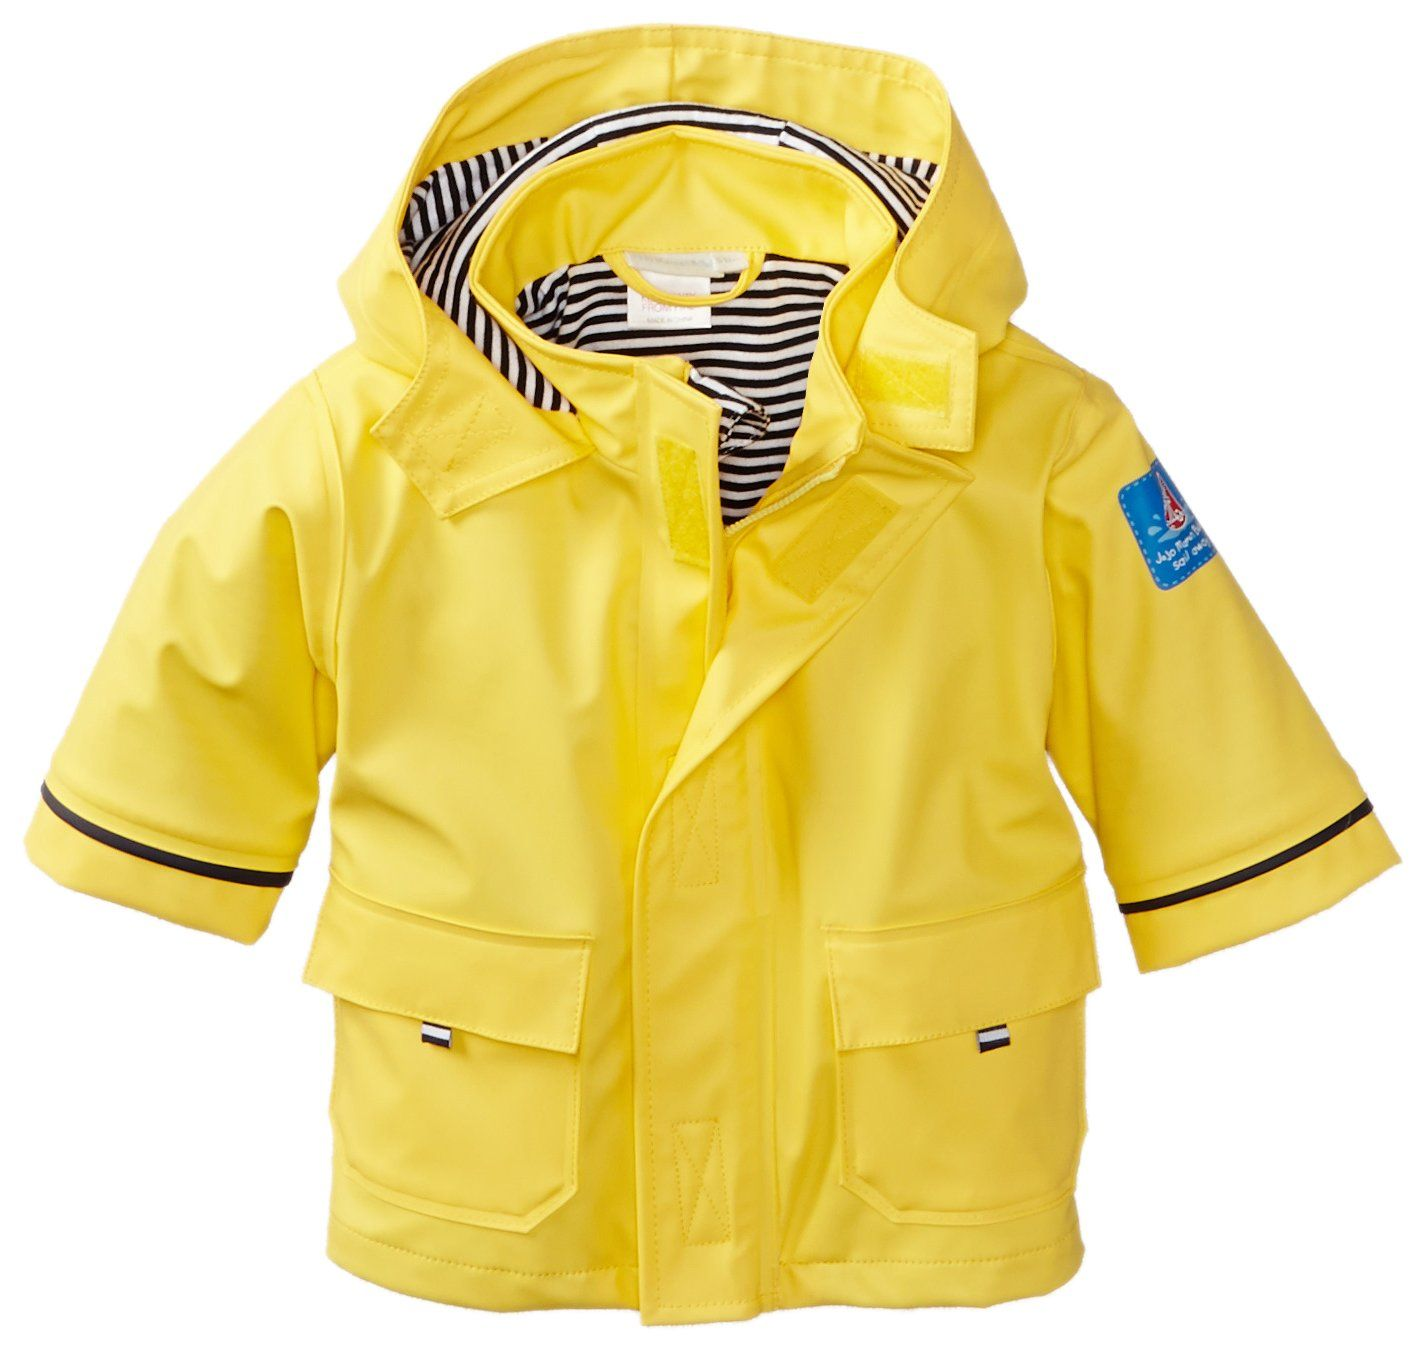 a9373981f Amazon.com  JoJo Maman Bebe Unisex-Baby Newborn Fisherman s Jacket ...